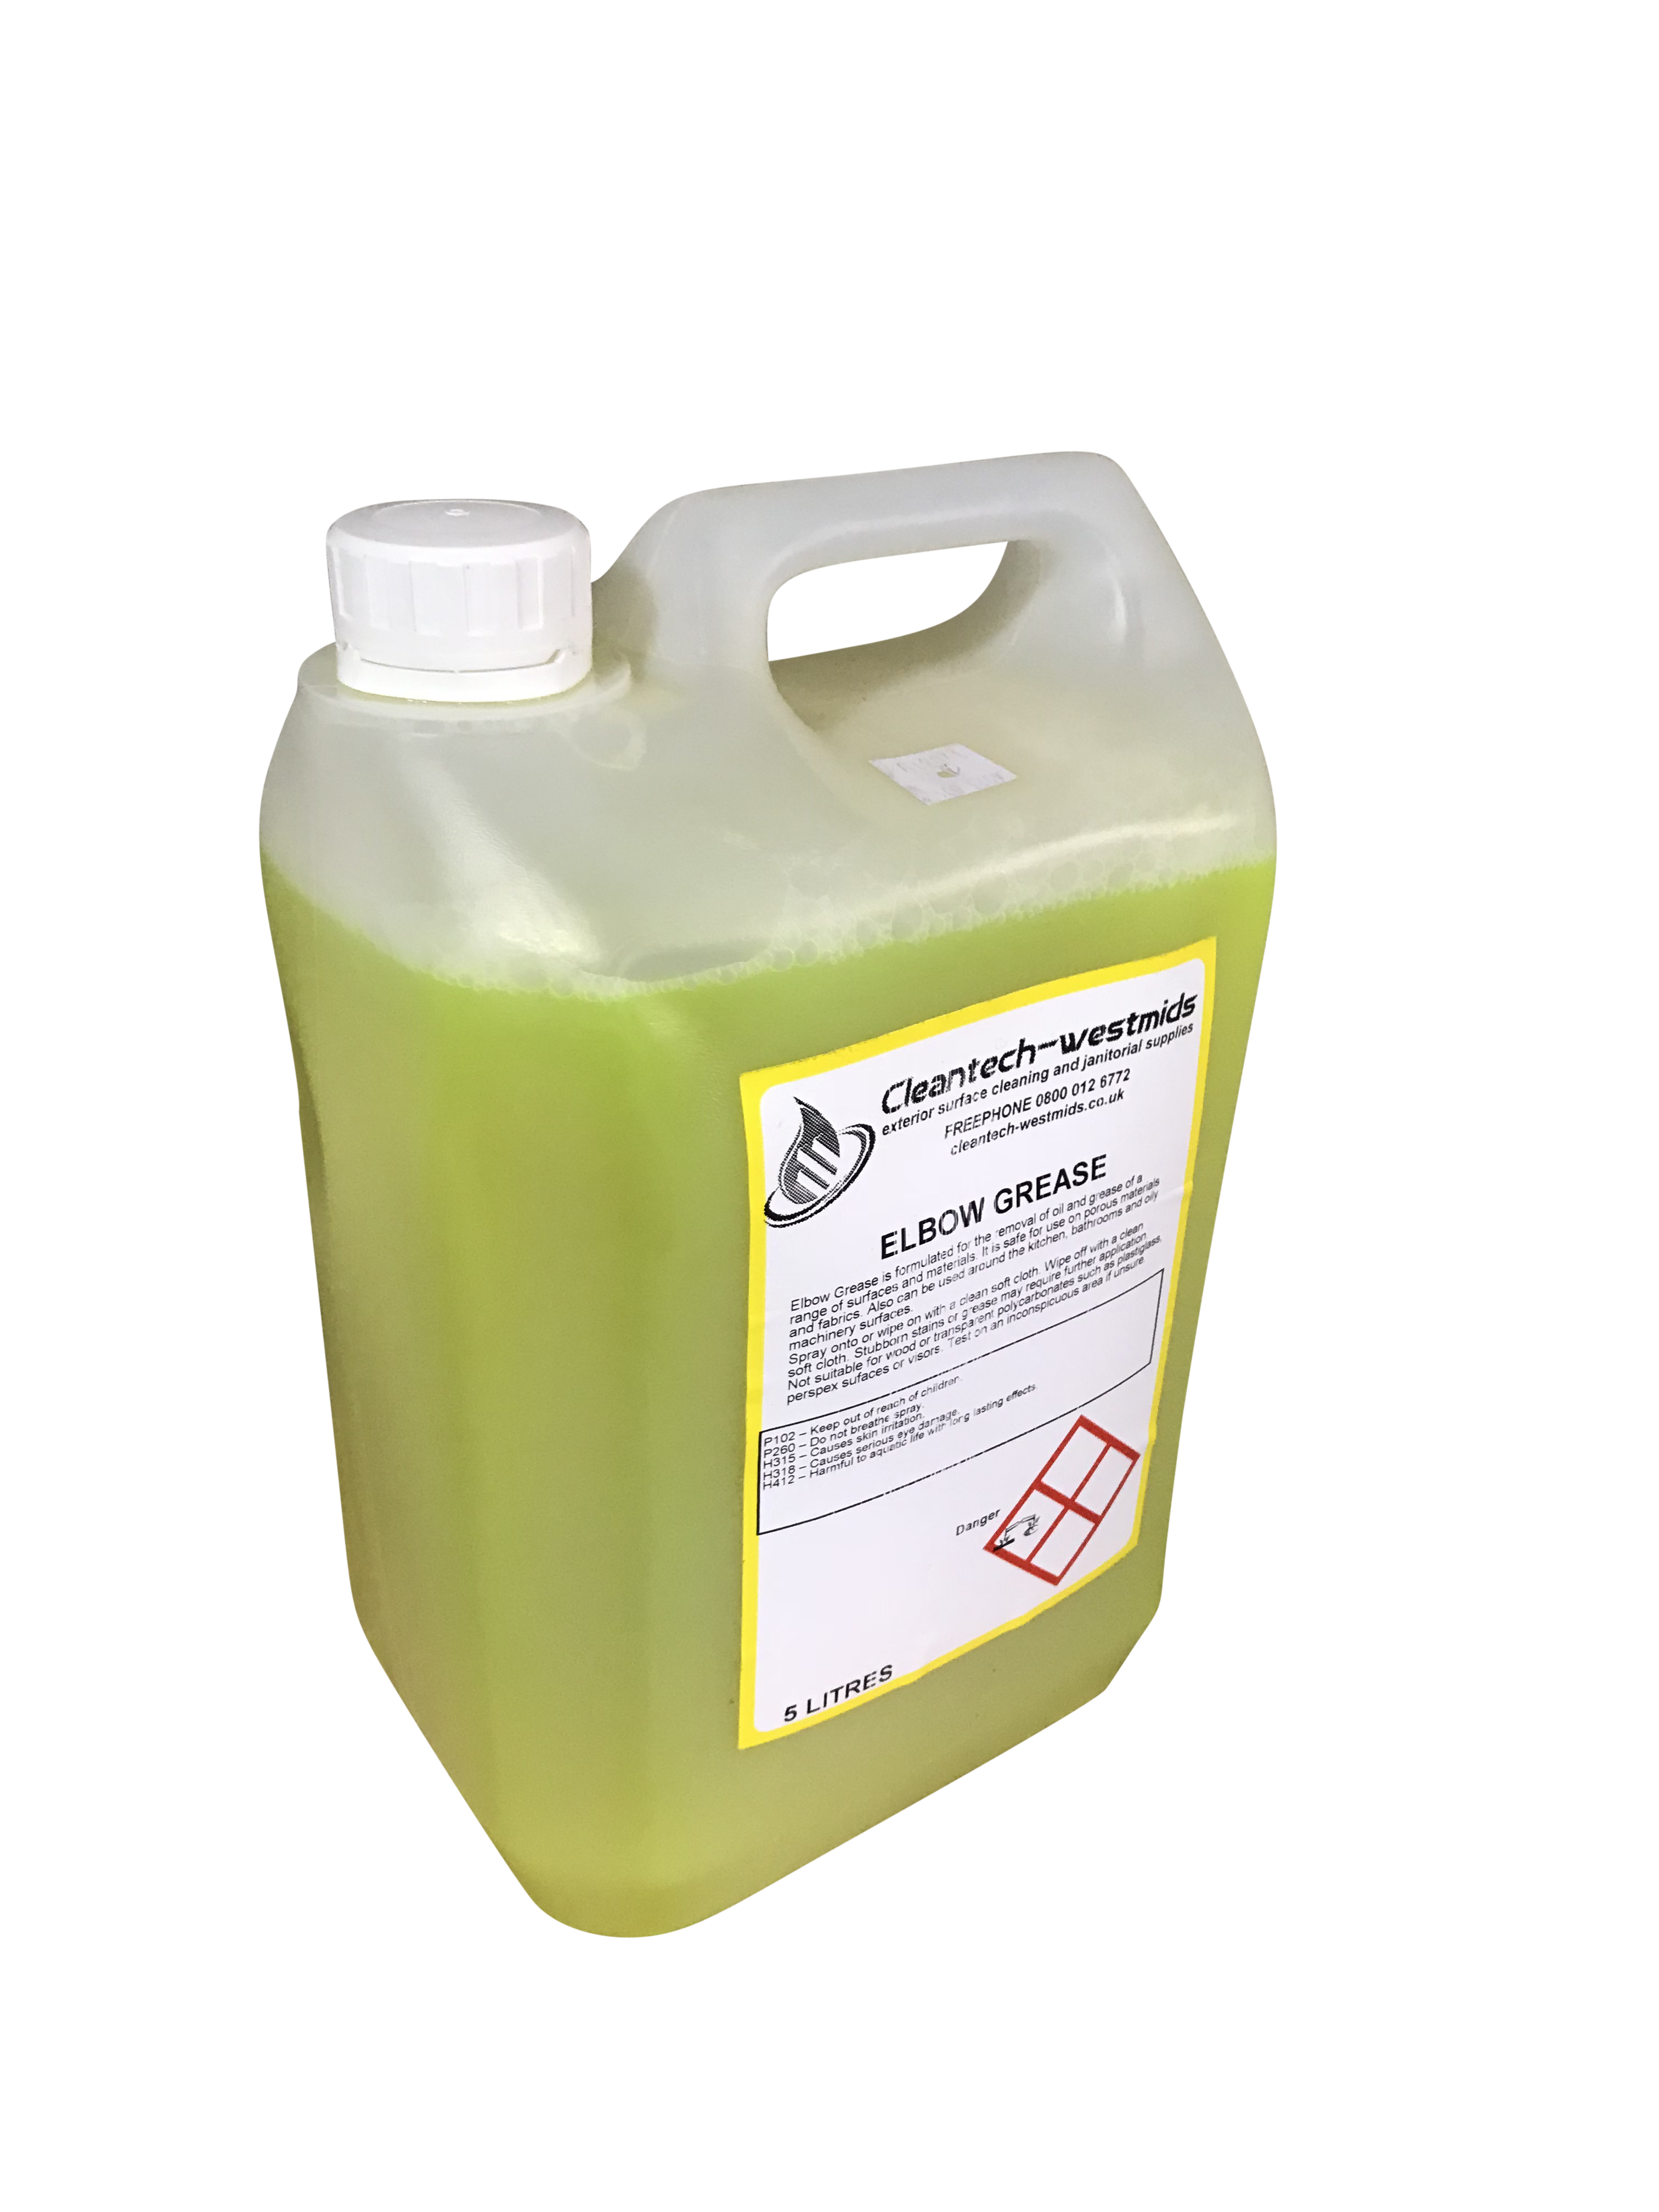 Elbow Grease 5 Litres Cleantech Westmids